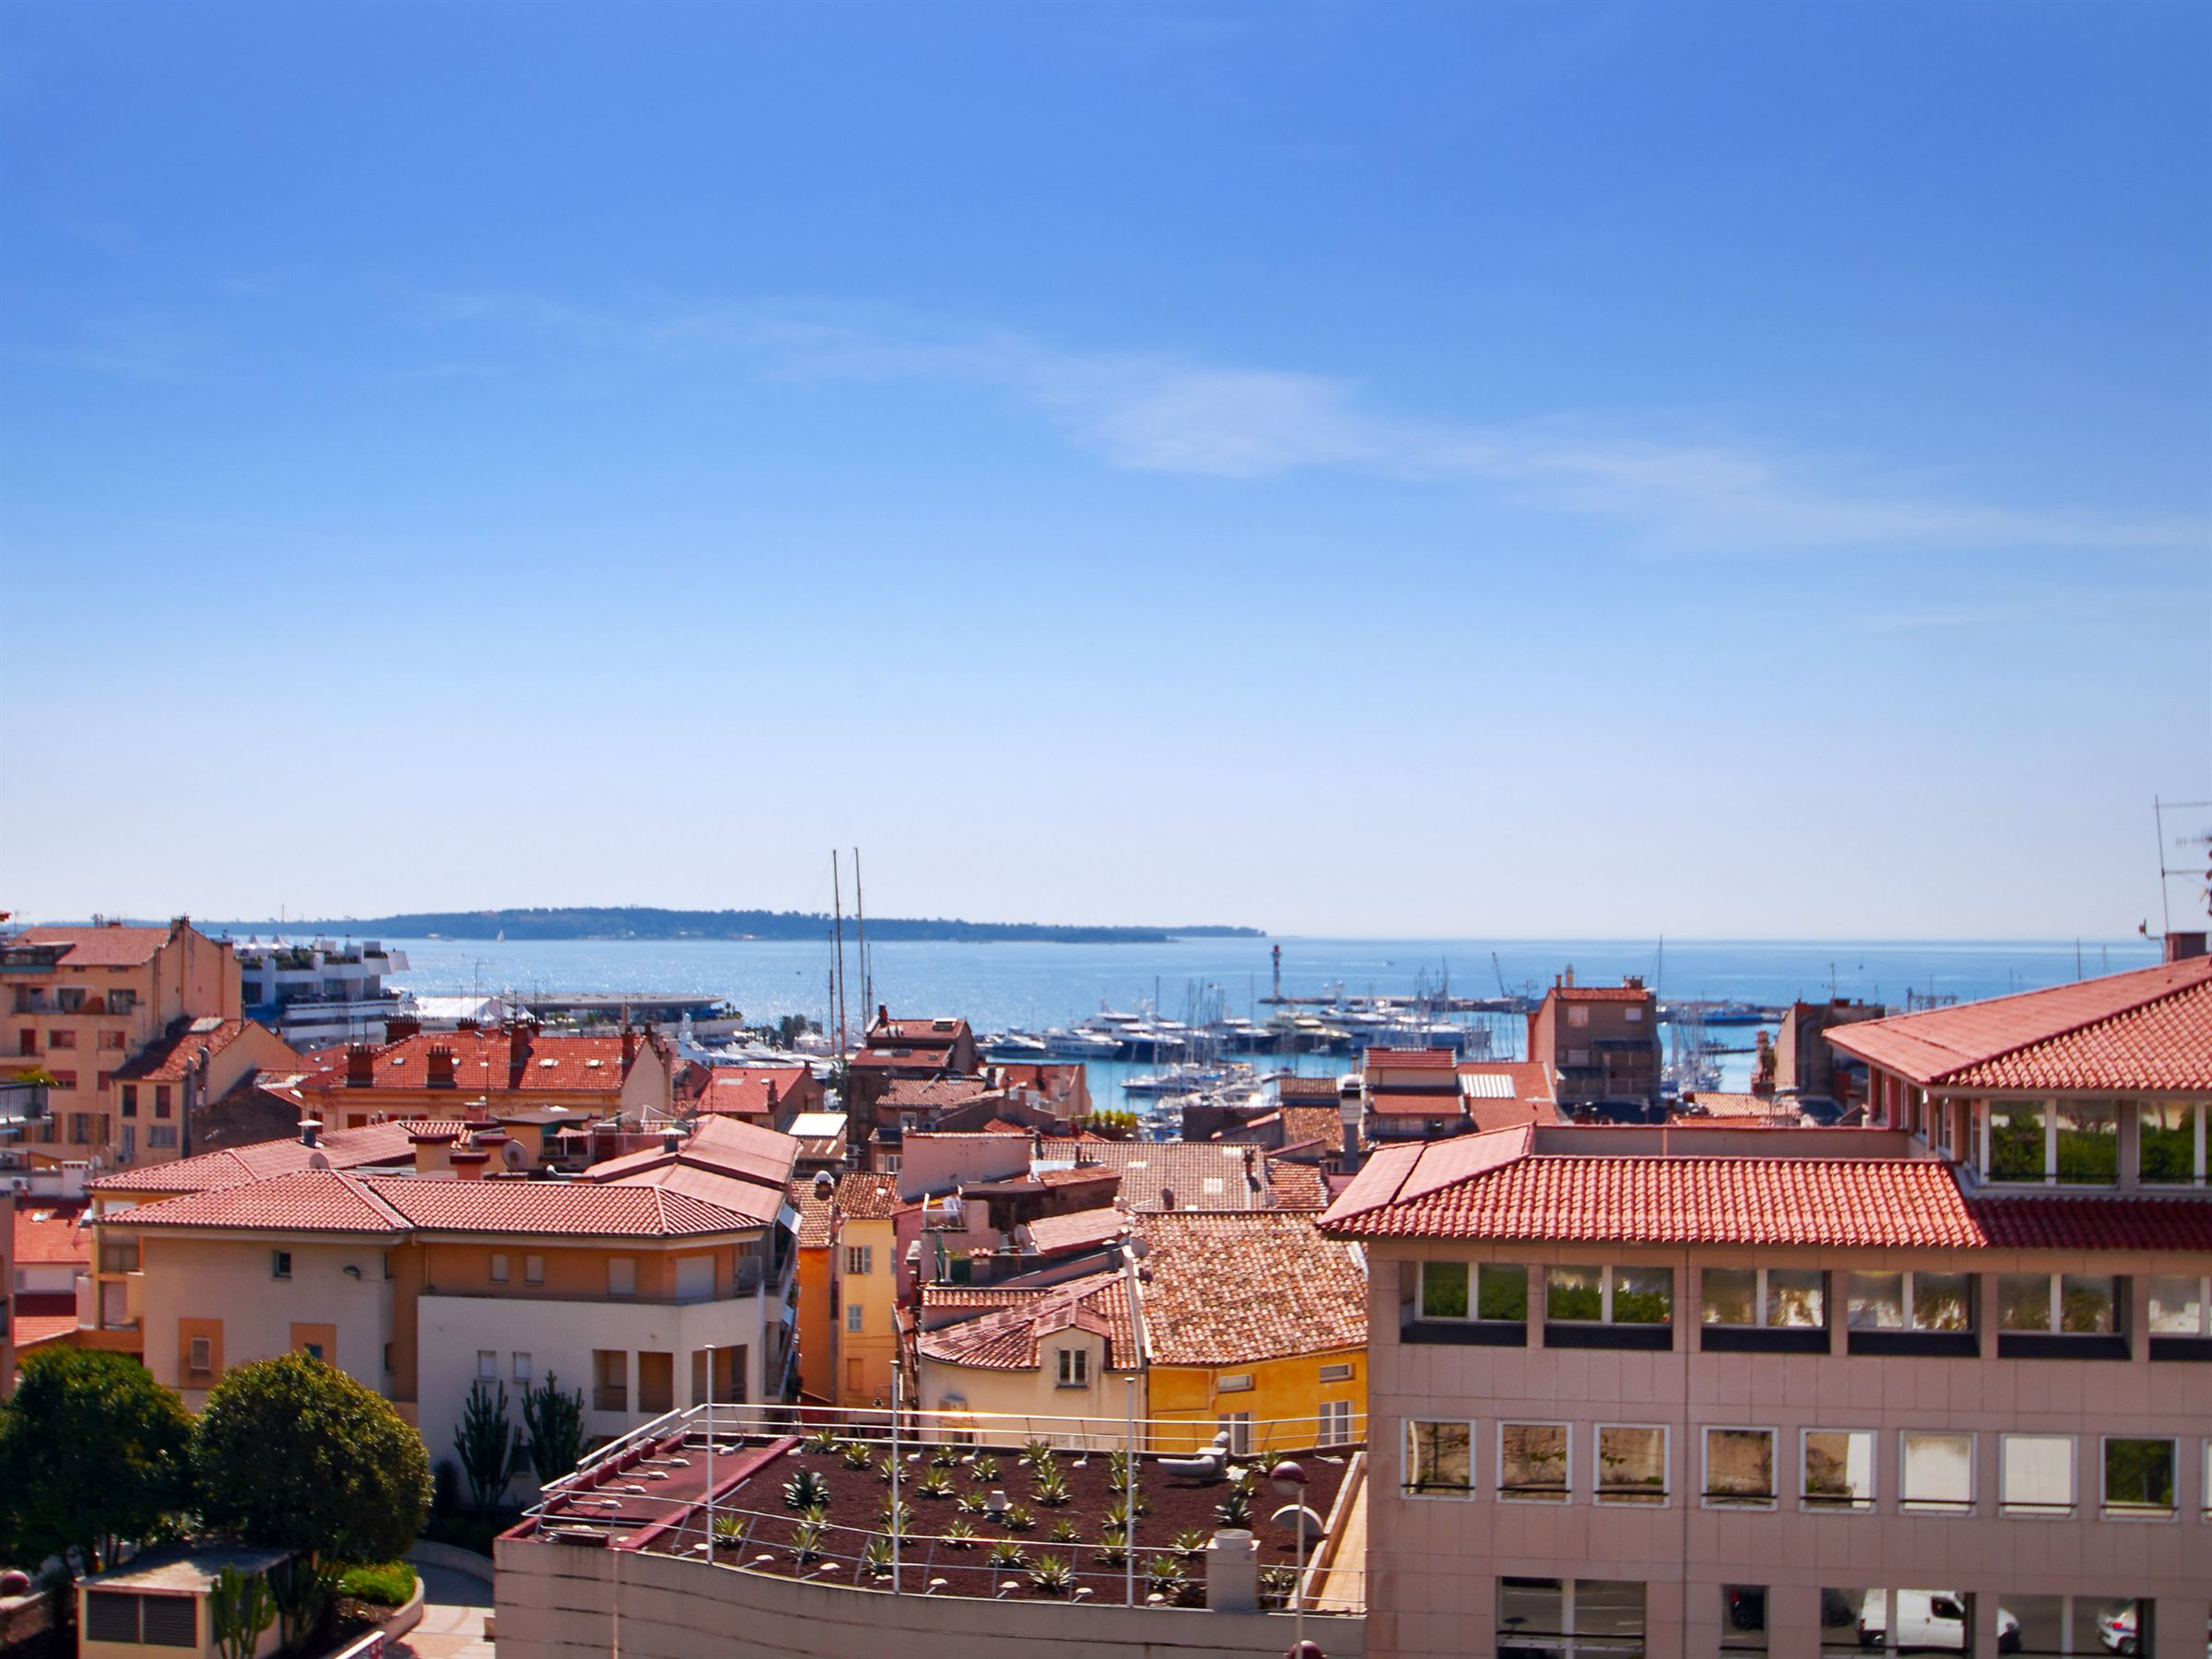 Apartment for Sale at Cannes City Center - large apartment for sale with sea views Cannes, Provence-Alpes-Cote D'Azur 06400 France